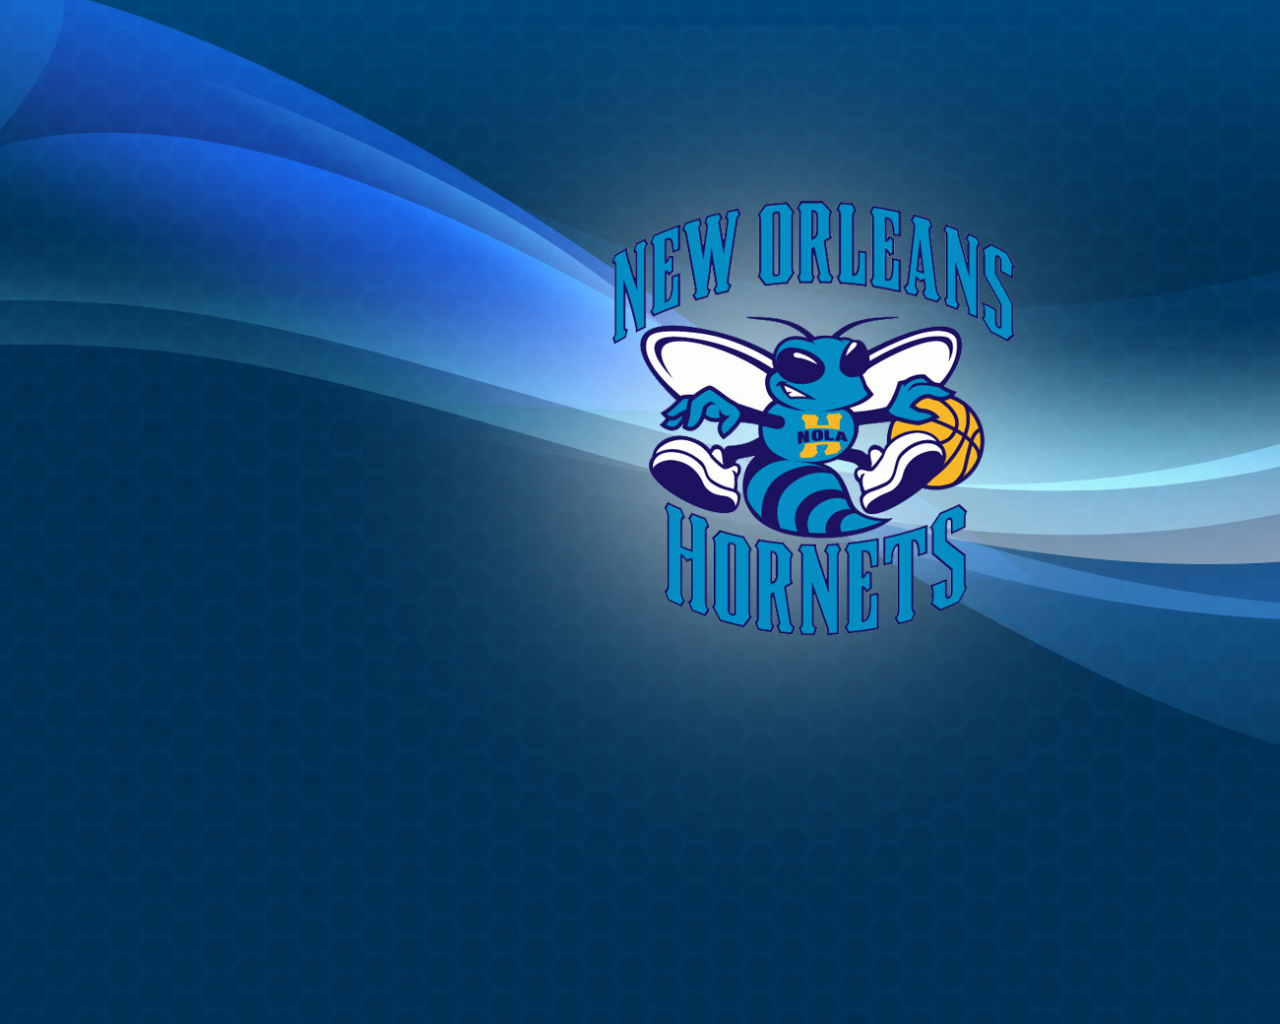 Free Download New Orleans Hornets Pelicans Nba Basketball 2